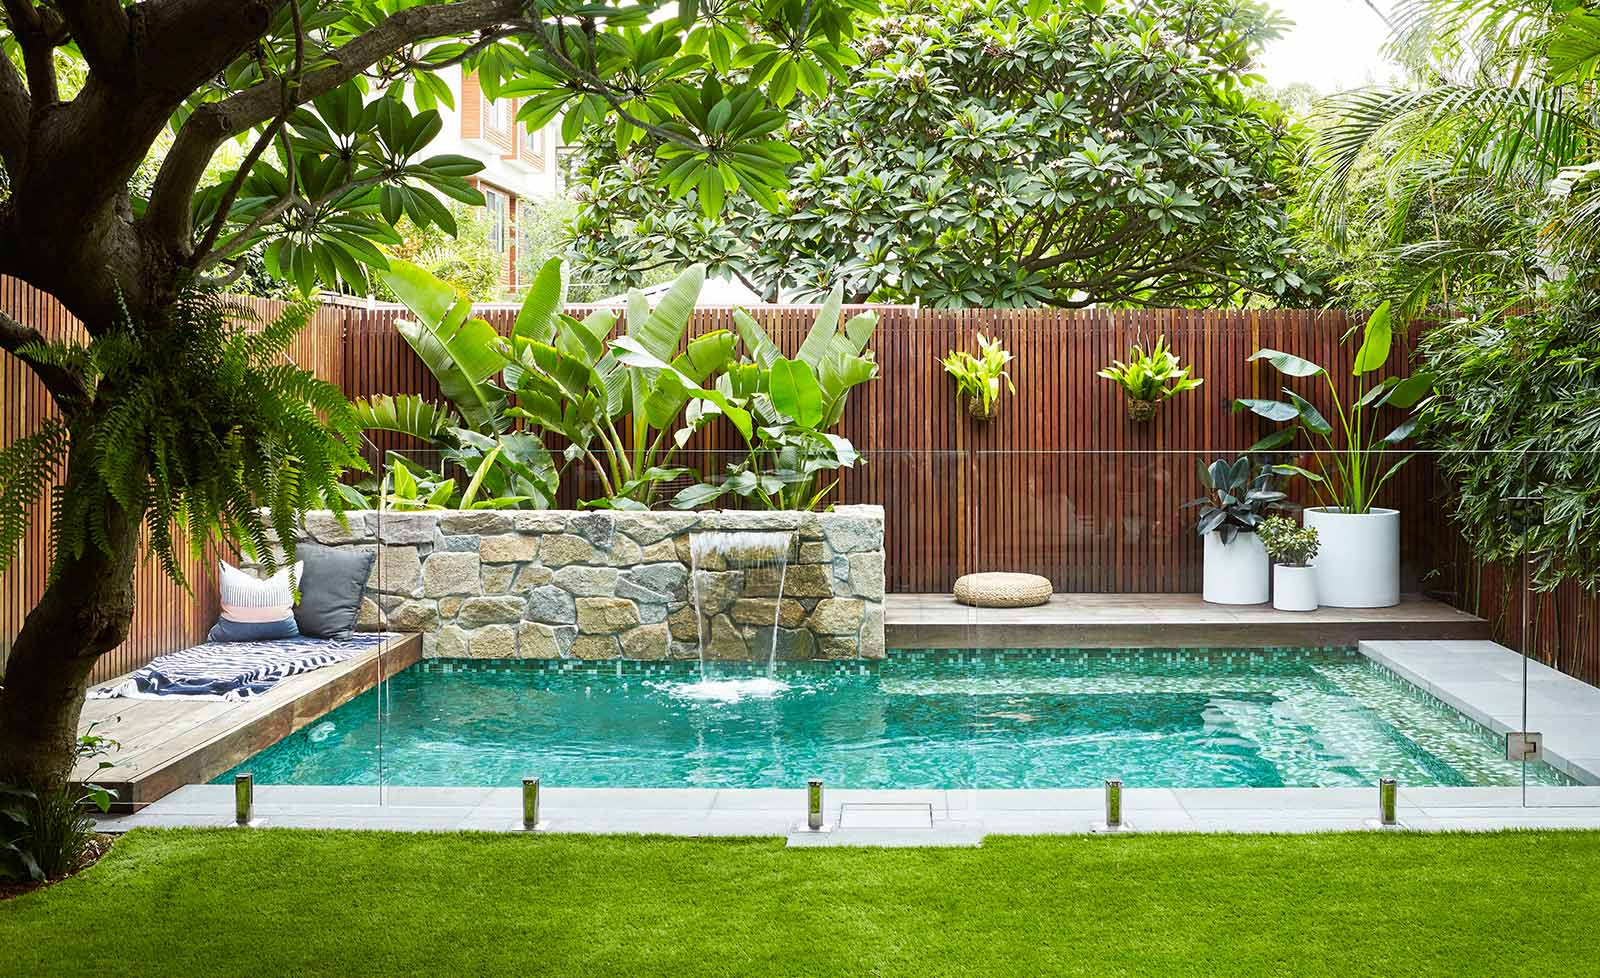 4 Tips on Maintaining Your Yard Effectively